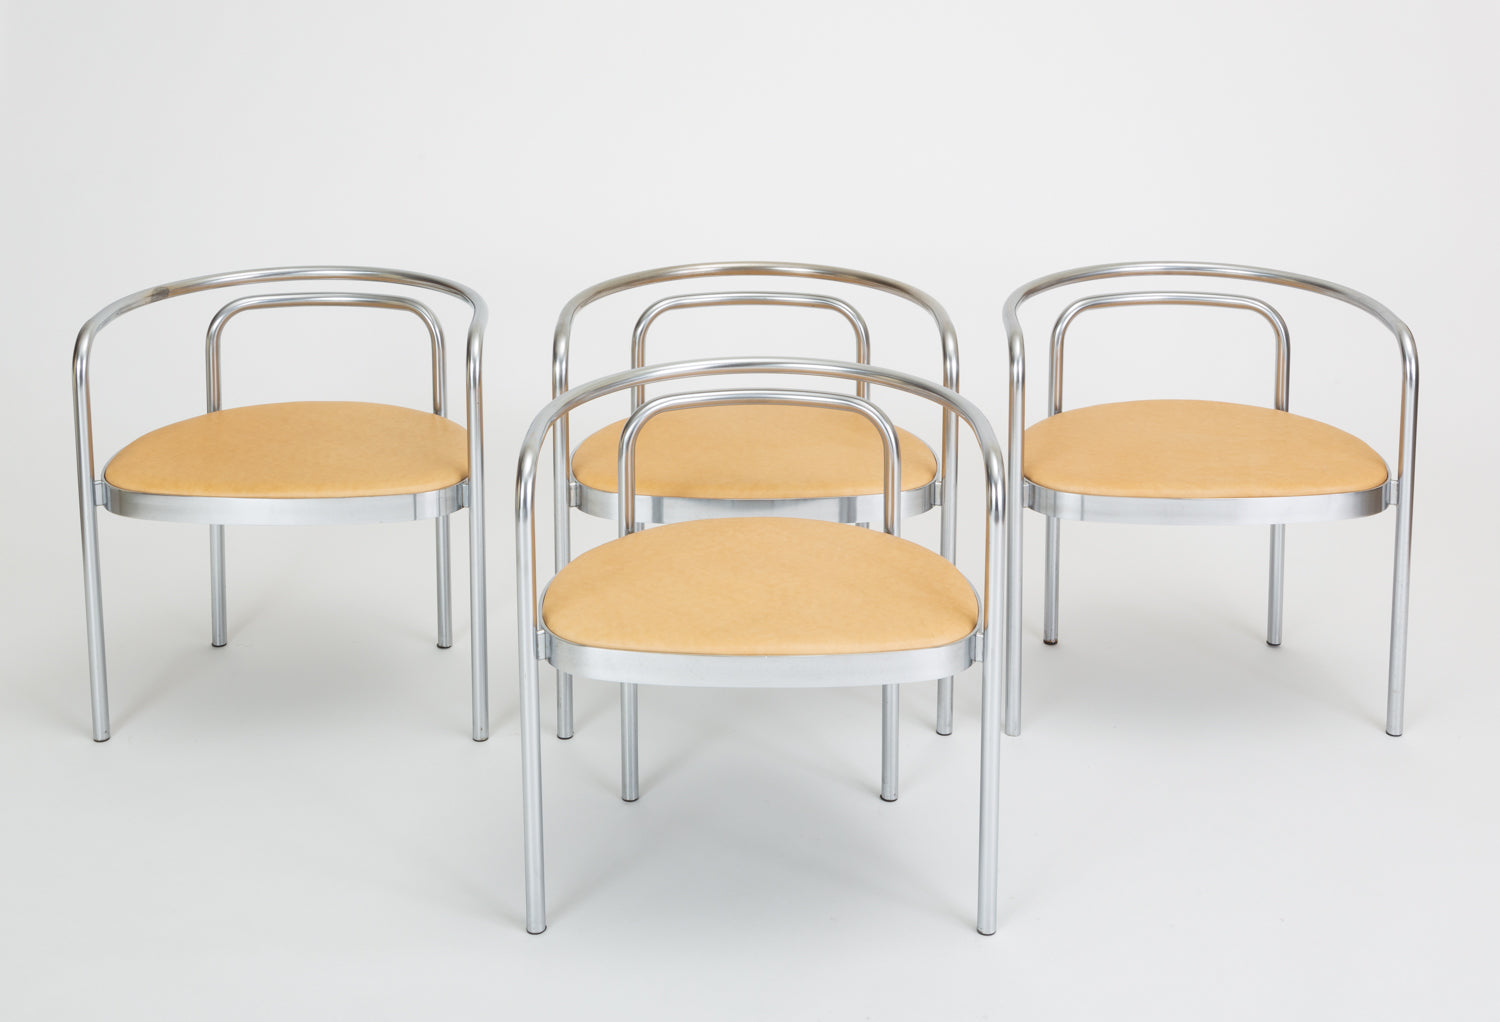 Single PK-12 Dining Chairs by Poul Kaerholm for E. Kold Christensen